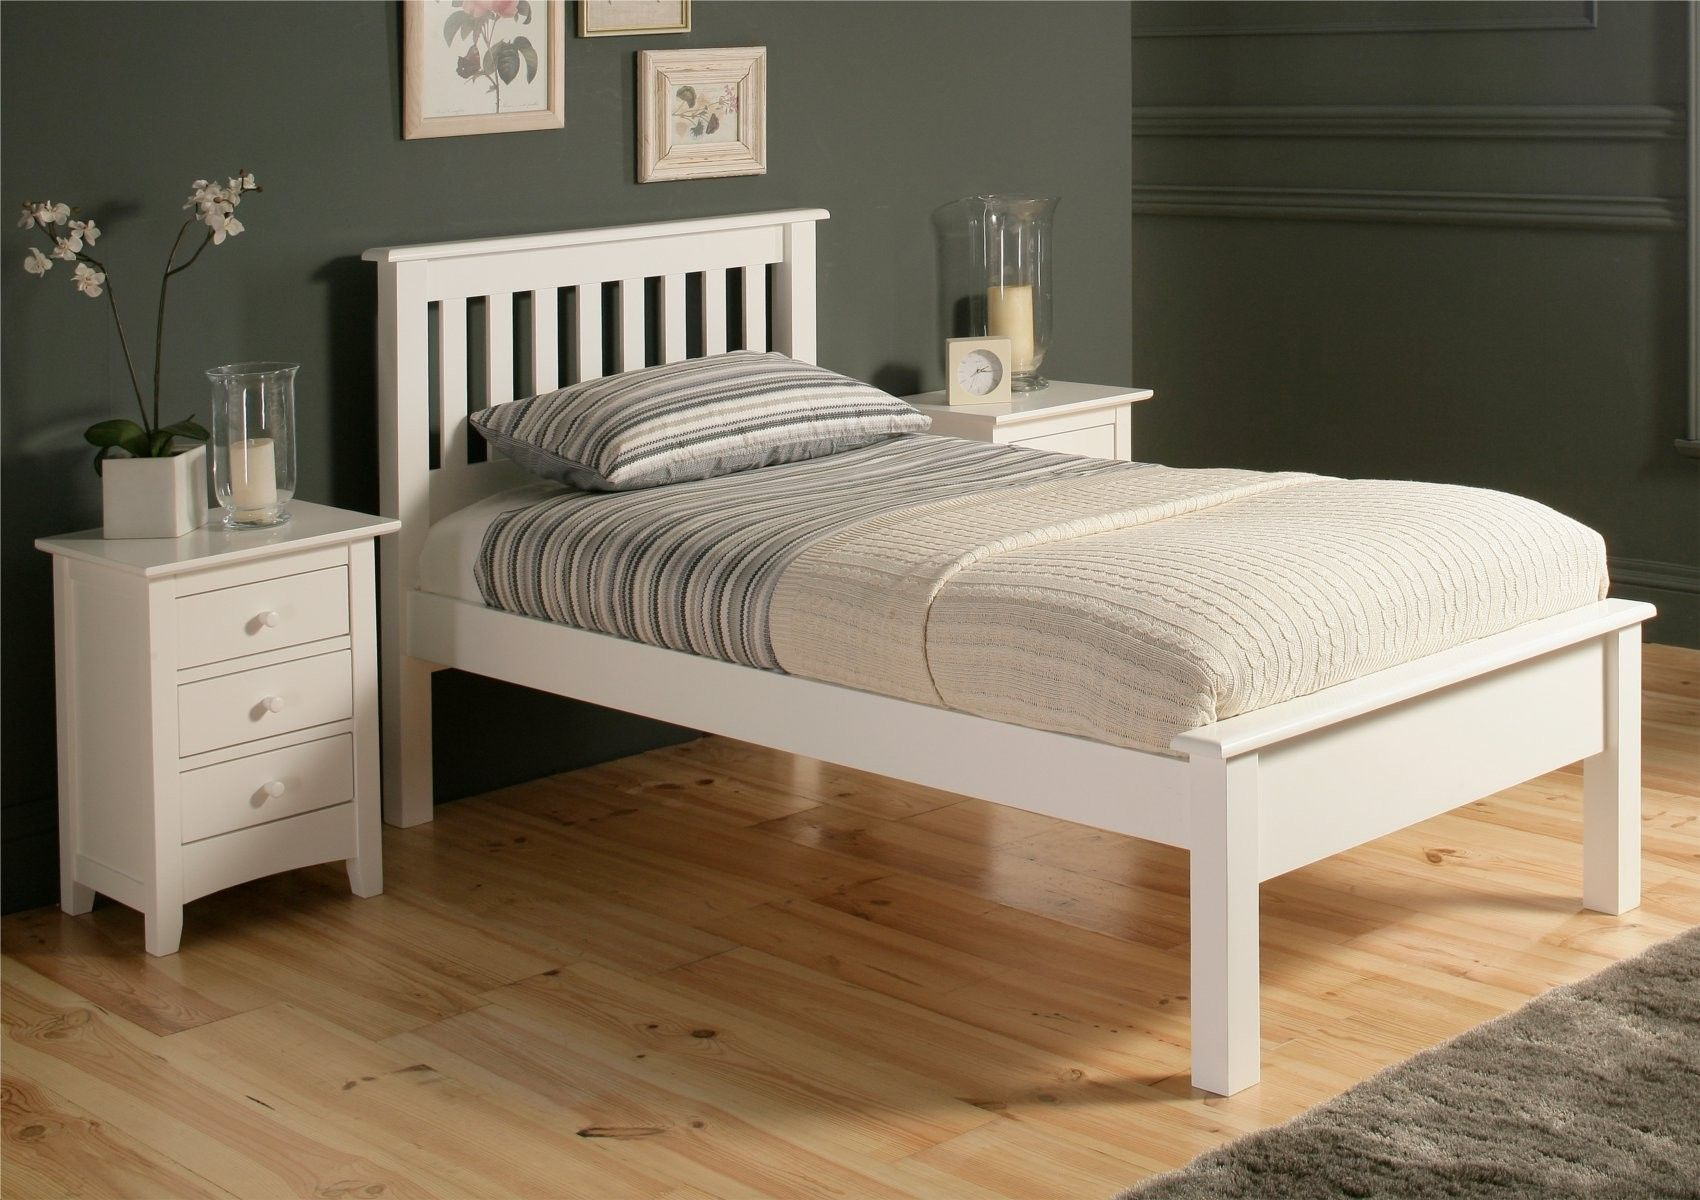 The low foot end design on this classic Shaker style bed